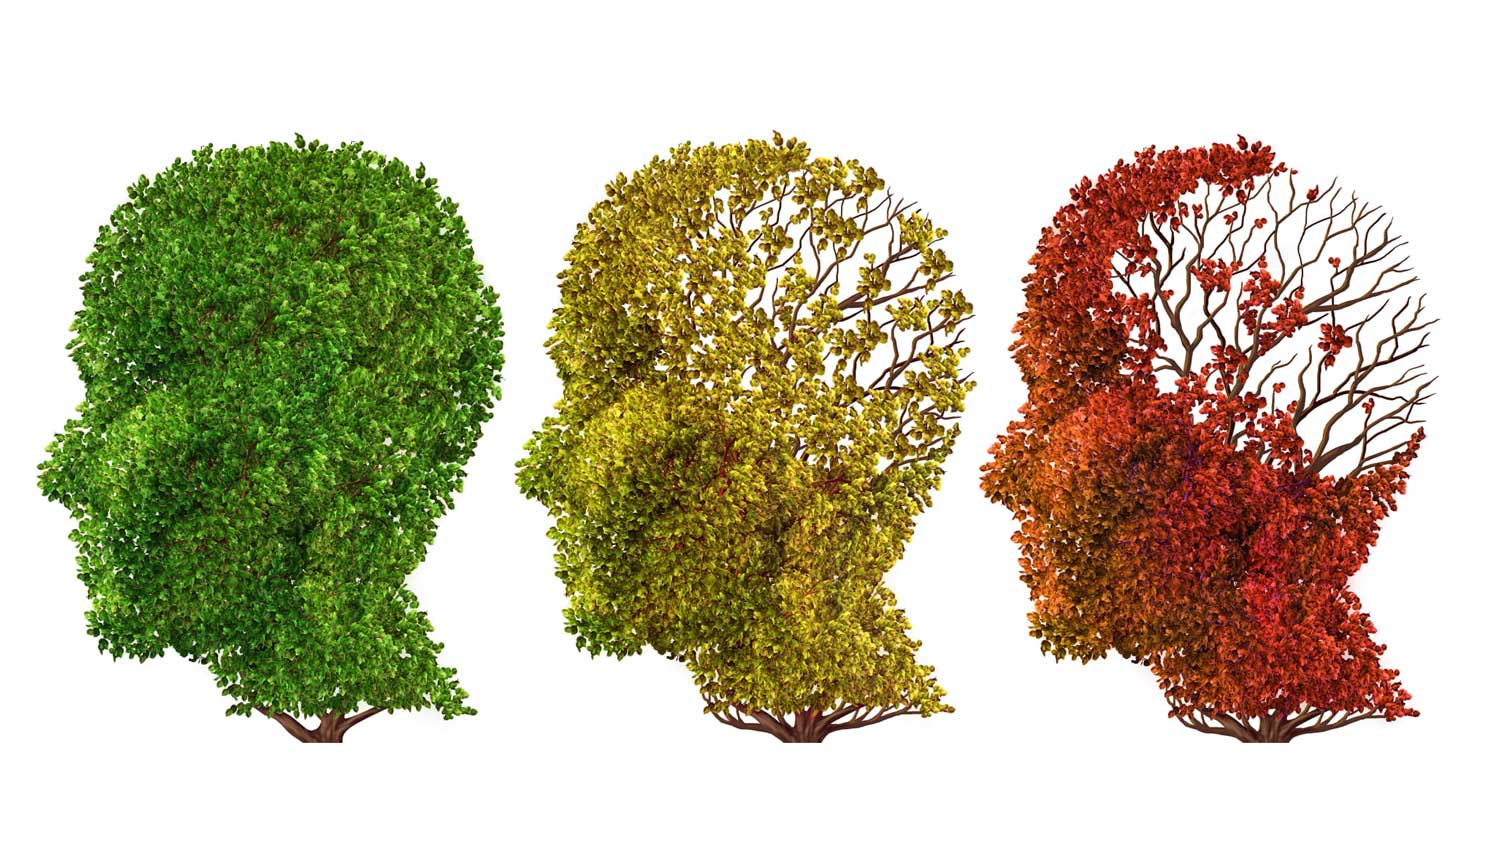 Age-Related Brain Decline Could be Reversible, Study Says